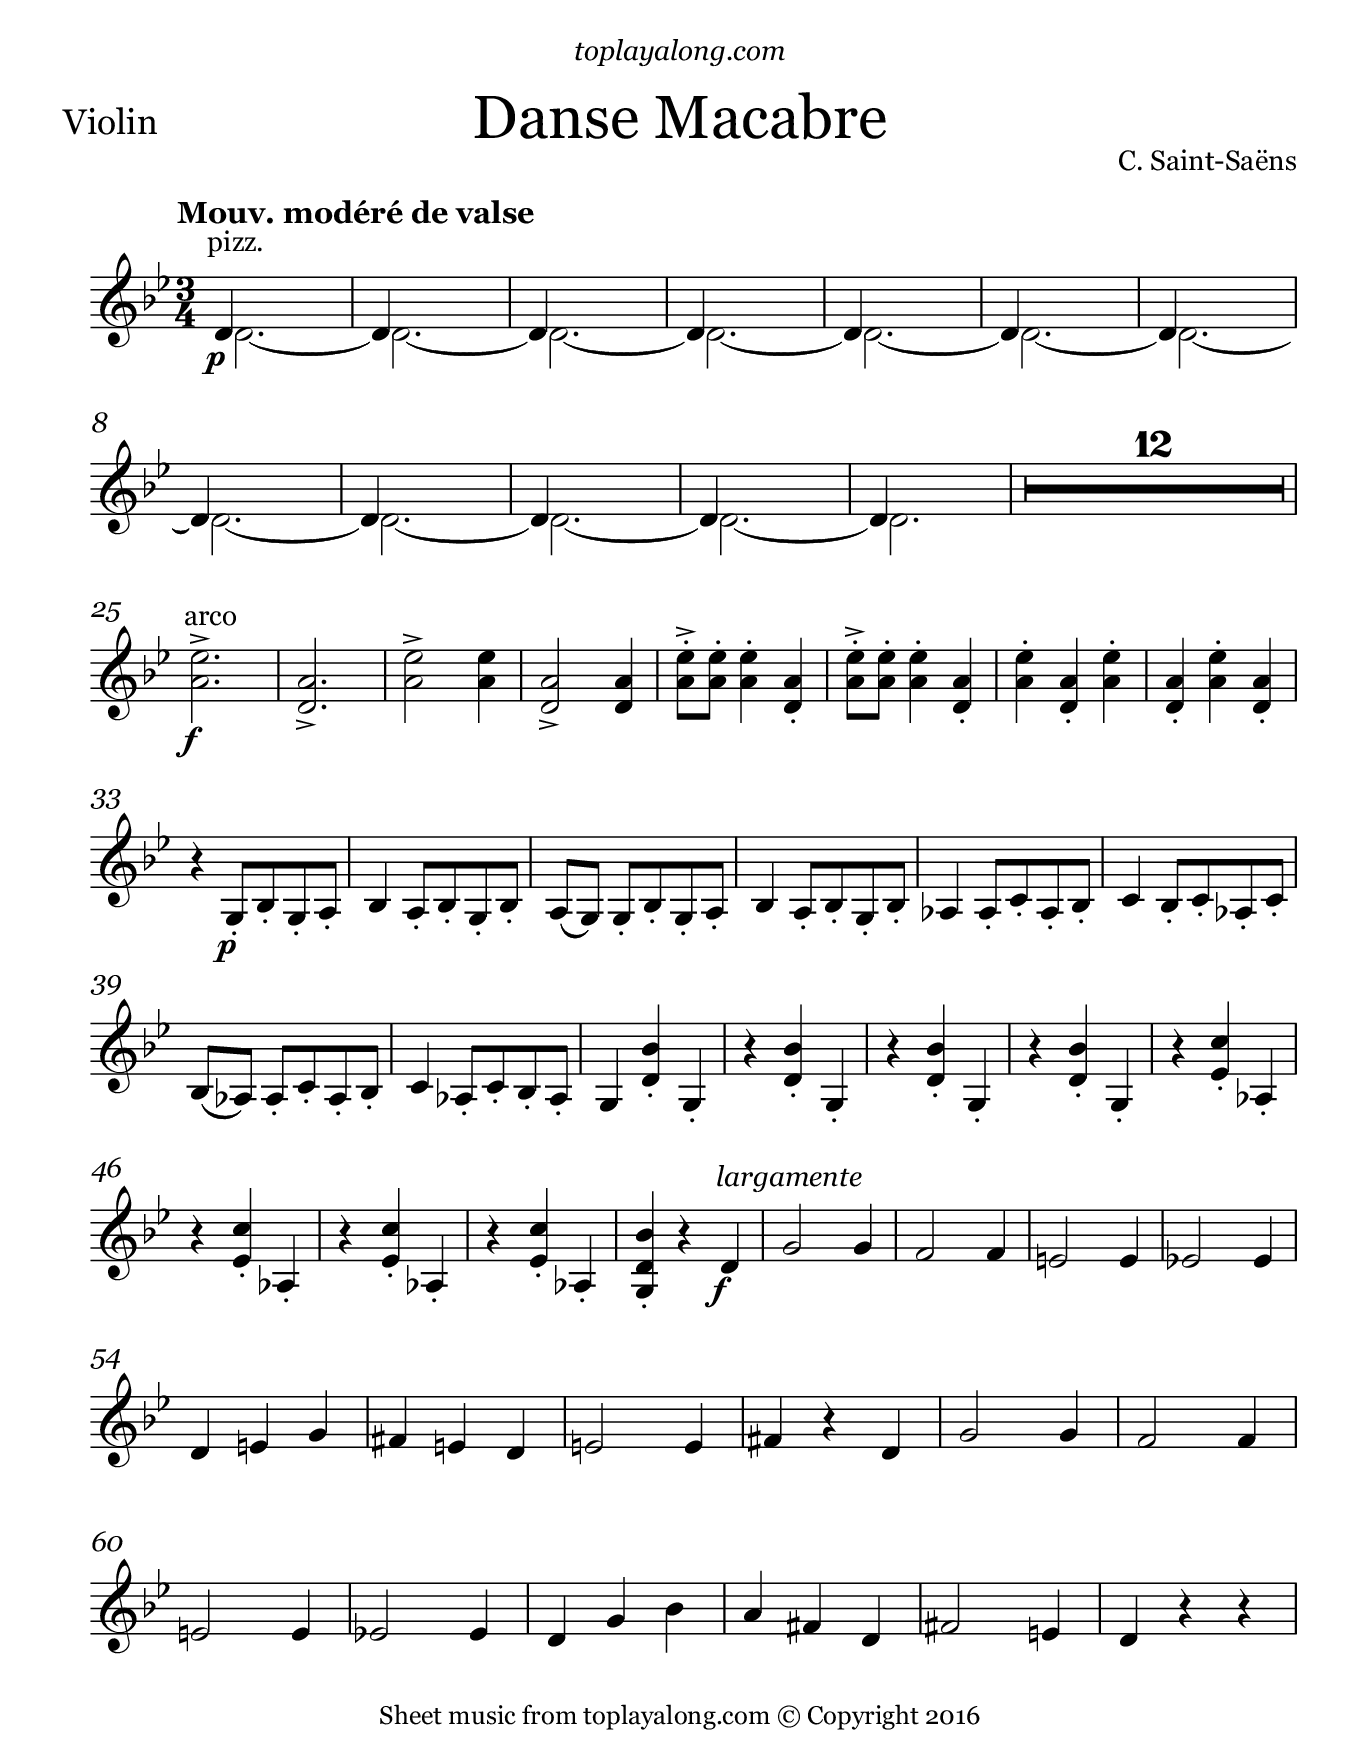 Danse Macabre by Saint-Saëns. Sheet music for Violin, page 1.